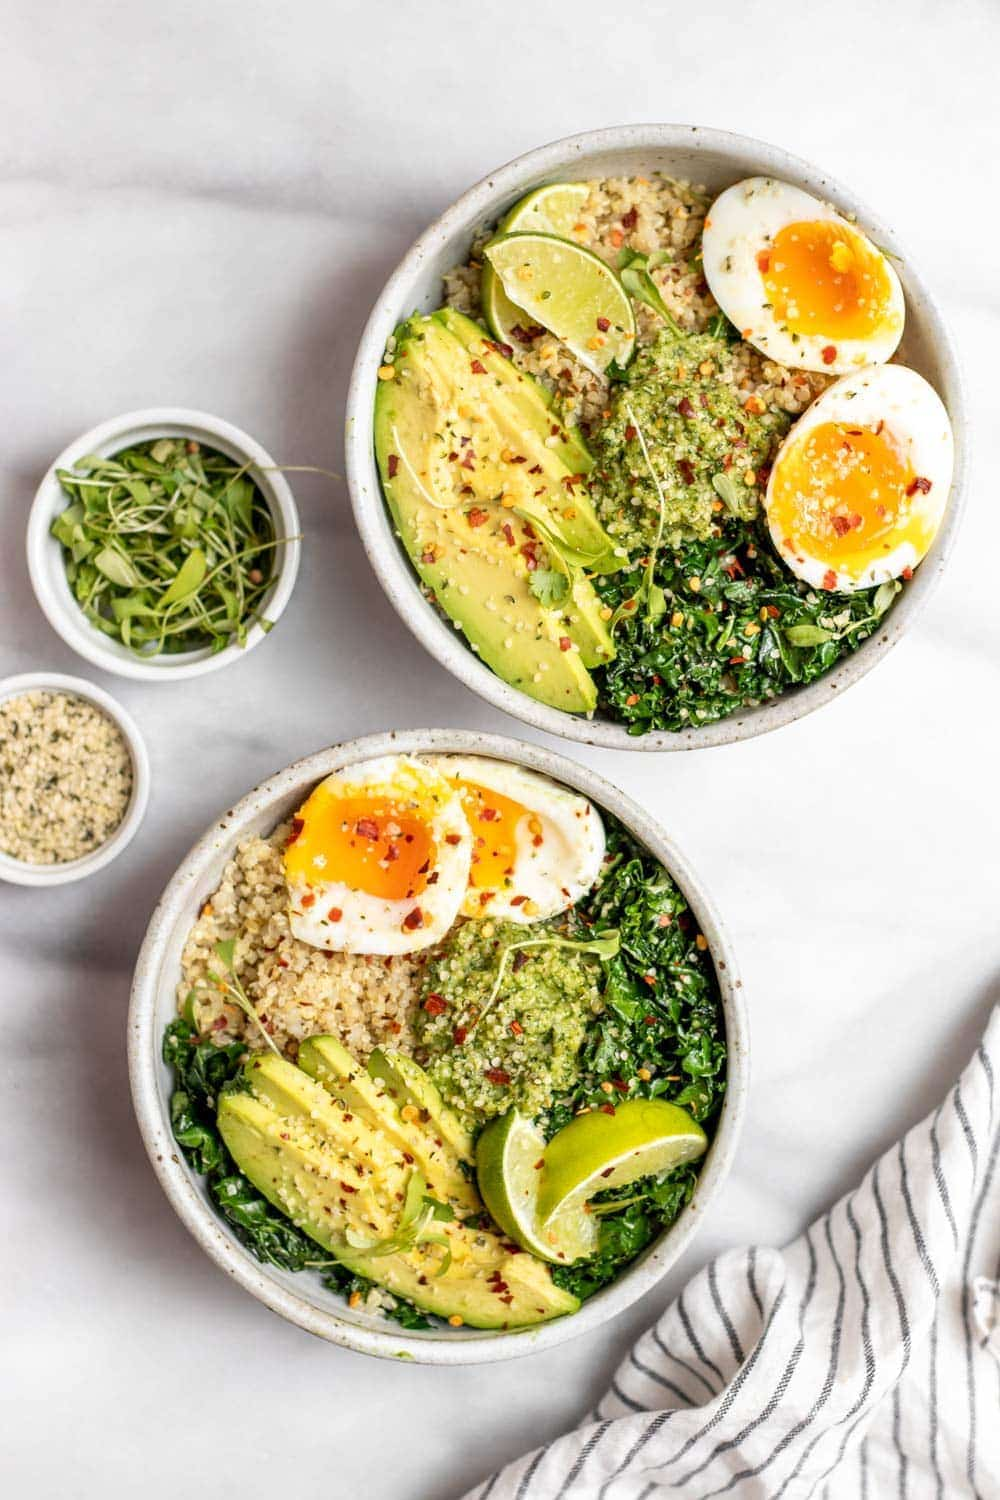 Quinoa breakfast bowl with kale, egg and avocado.